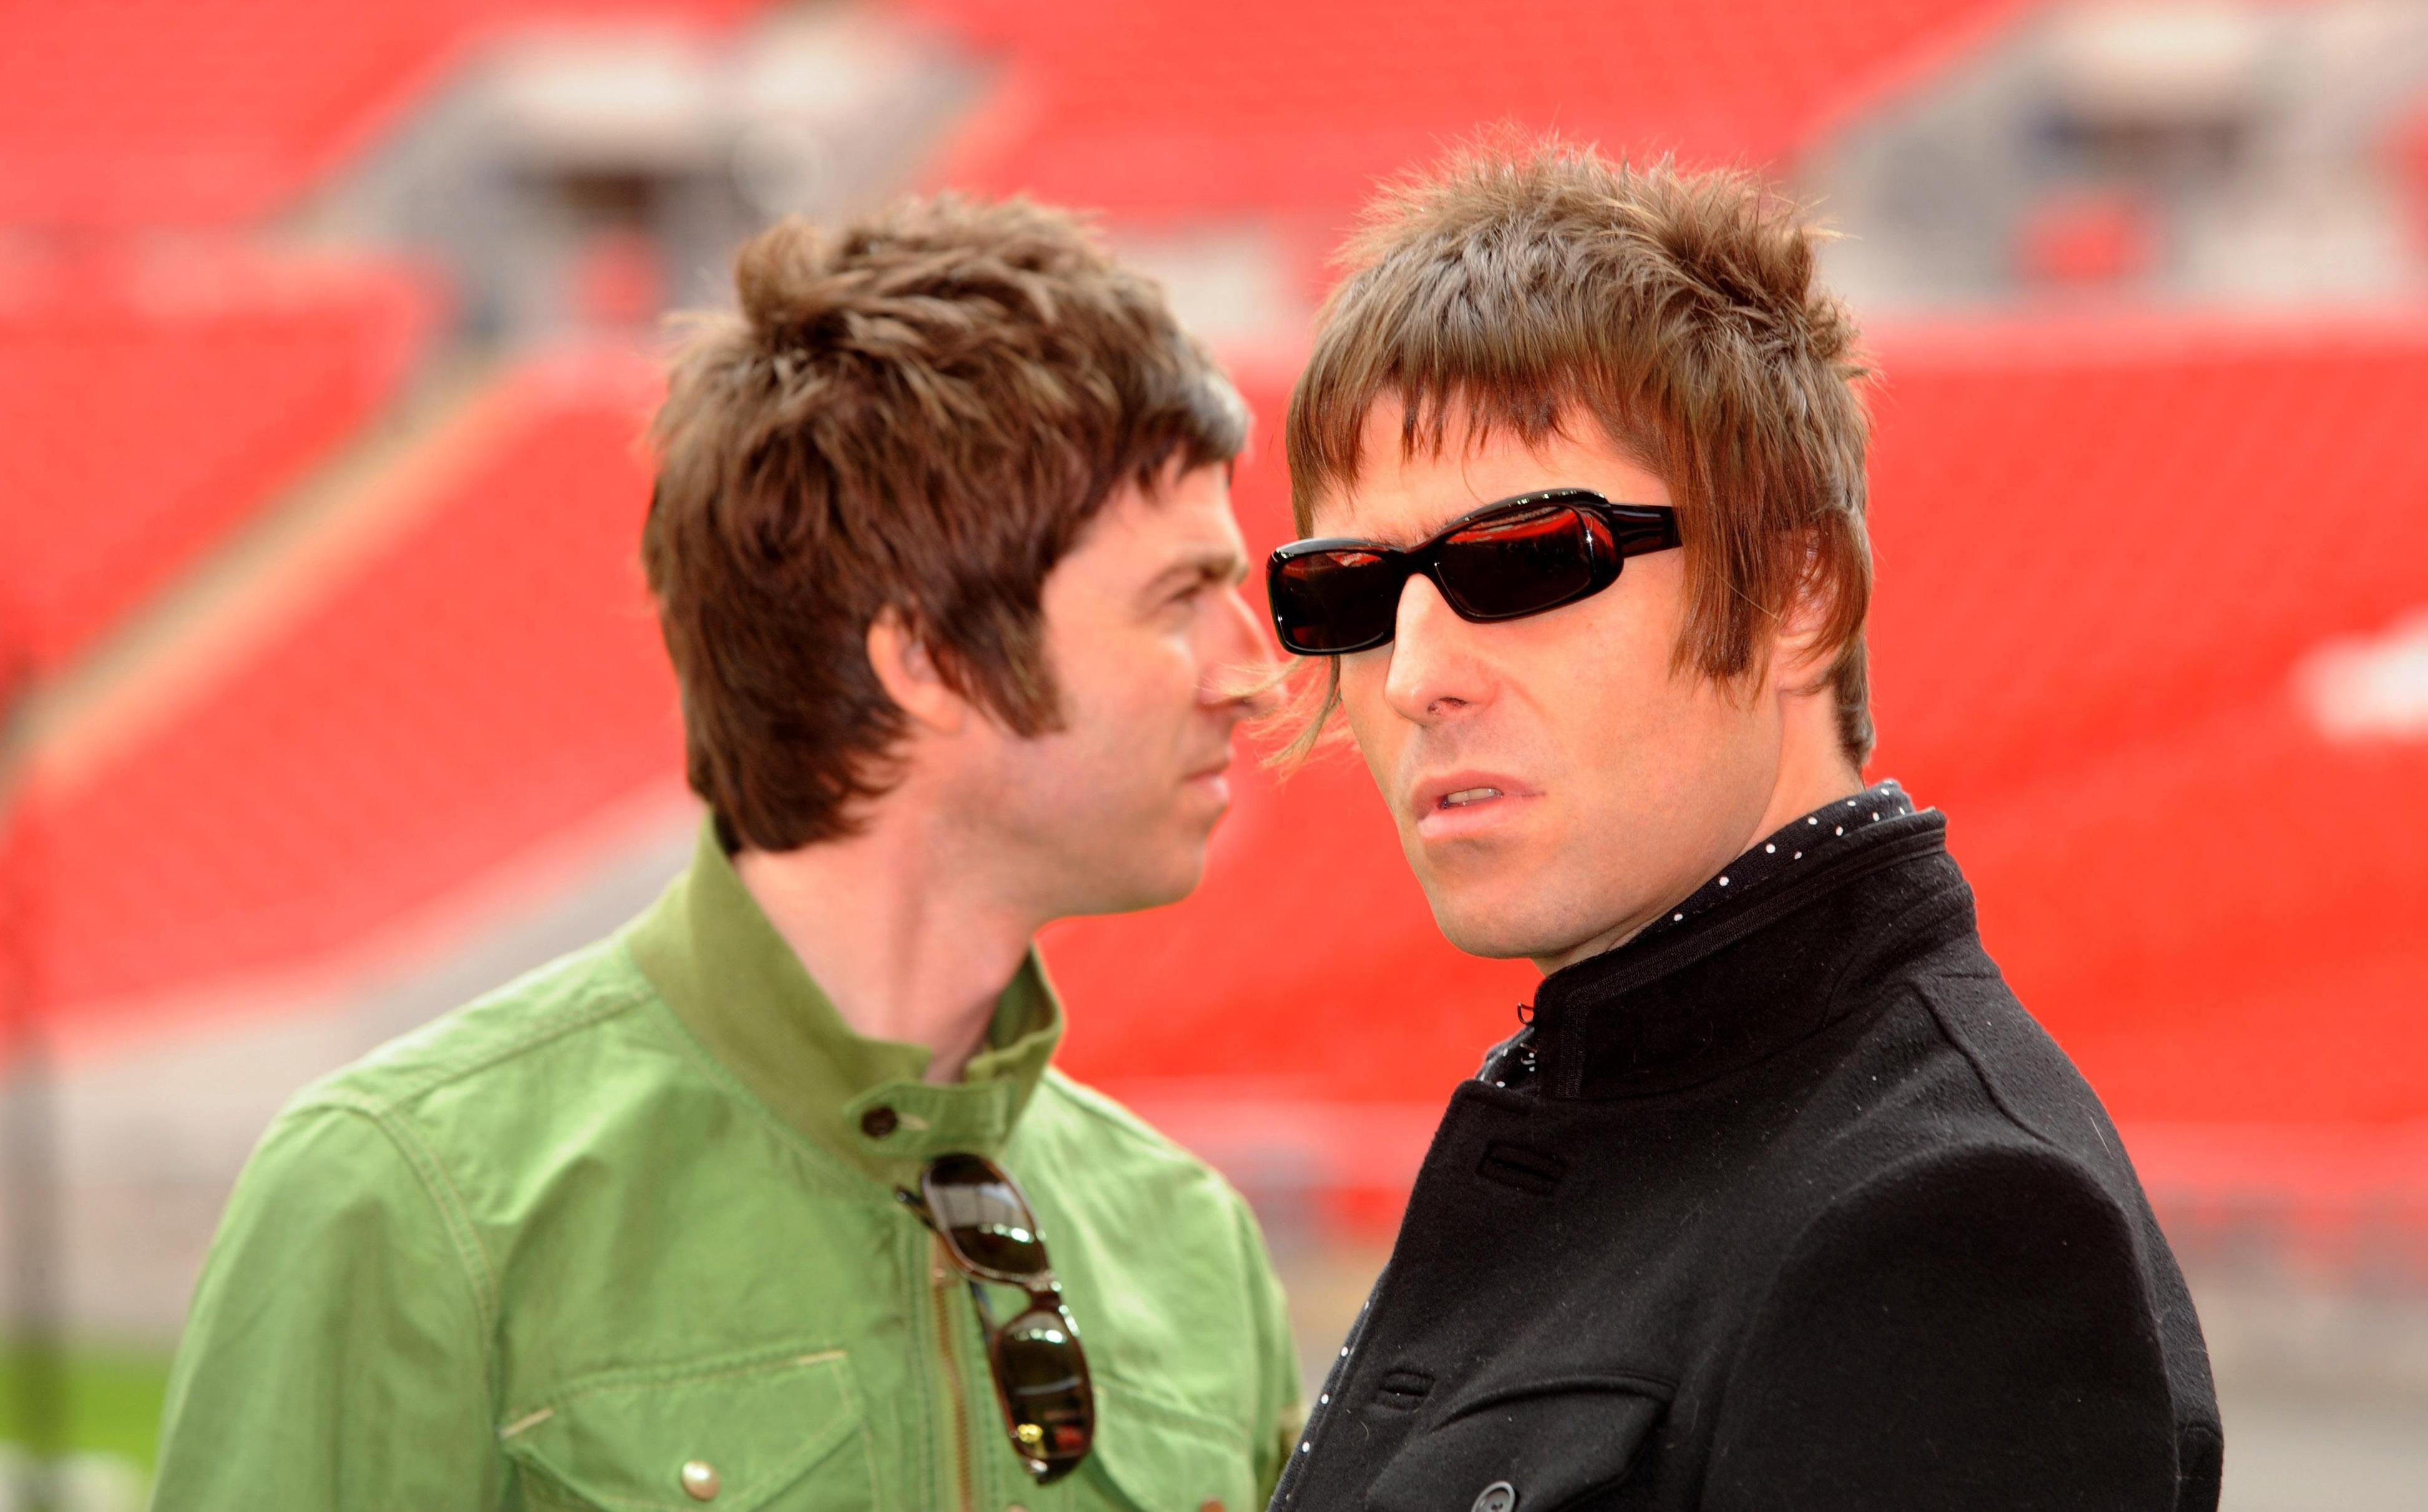 It's a Christmas miracle! Liam and Noel Gallagher settle their feud